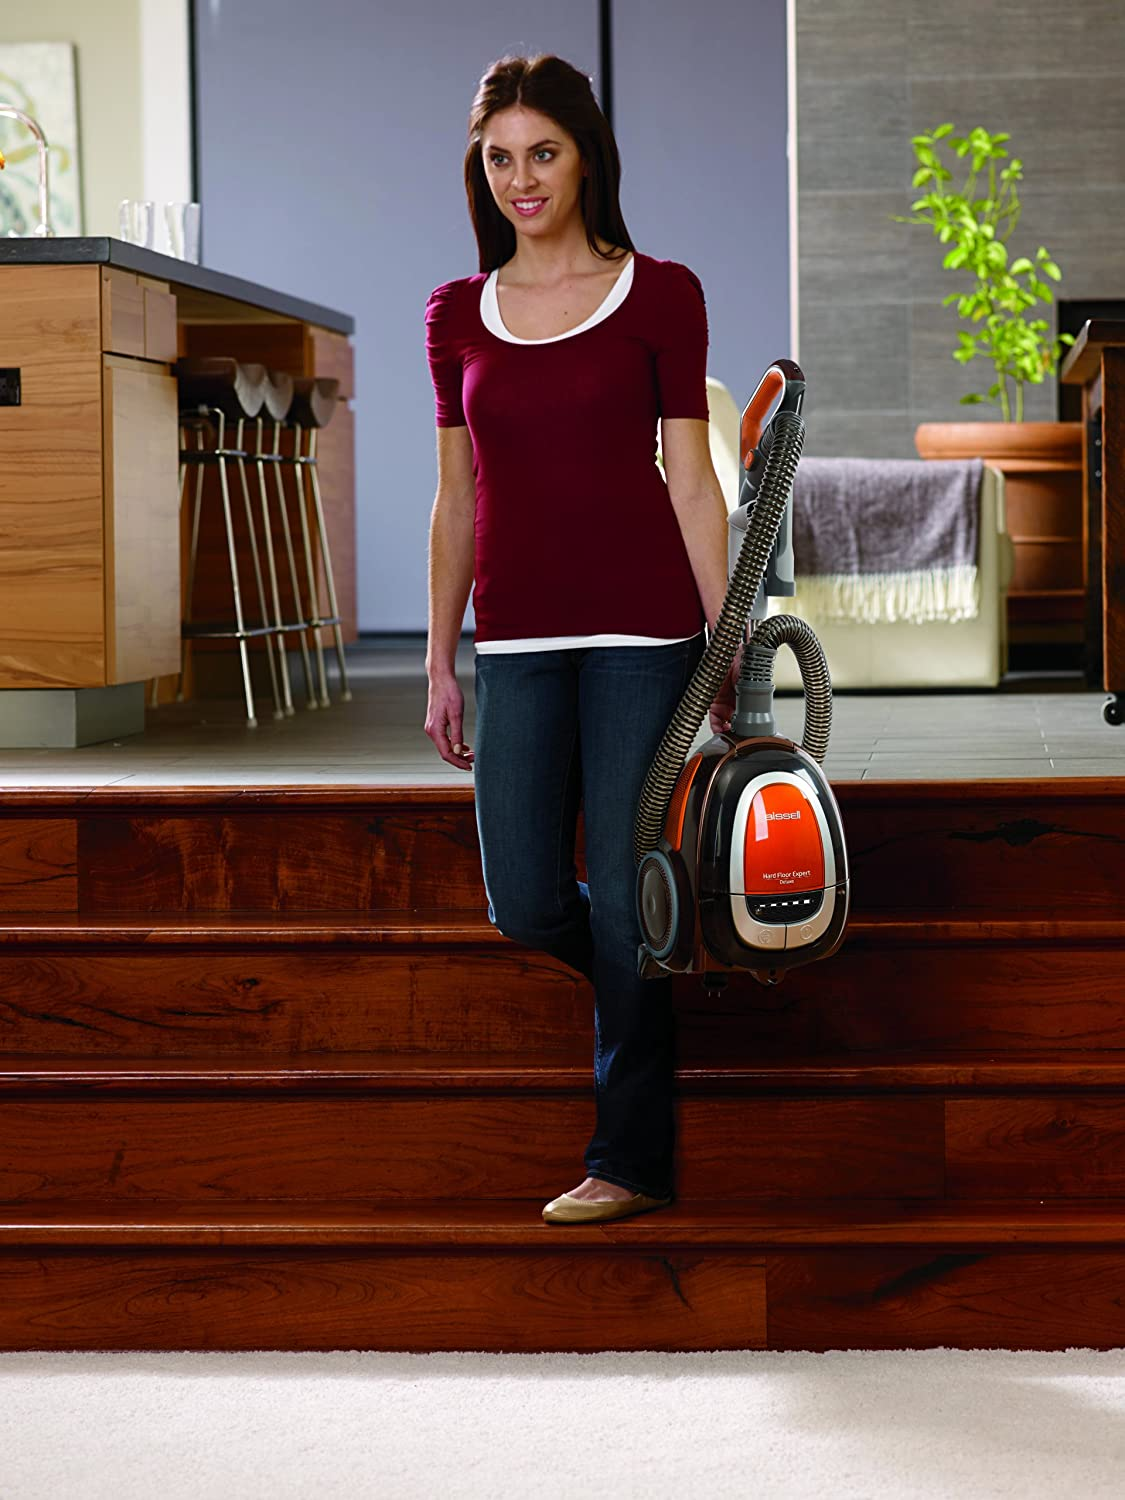 The Bissell 1161 costs just over $100 and is very good on hardwood floors.